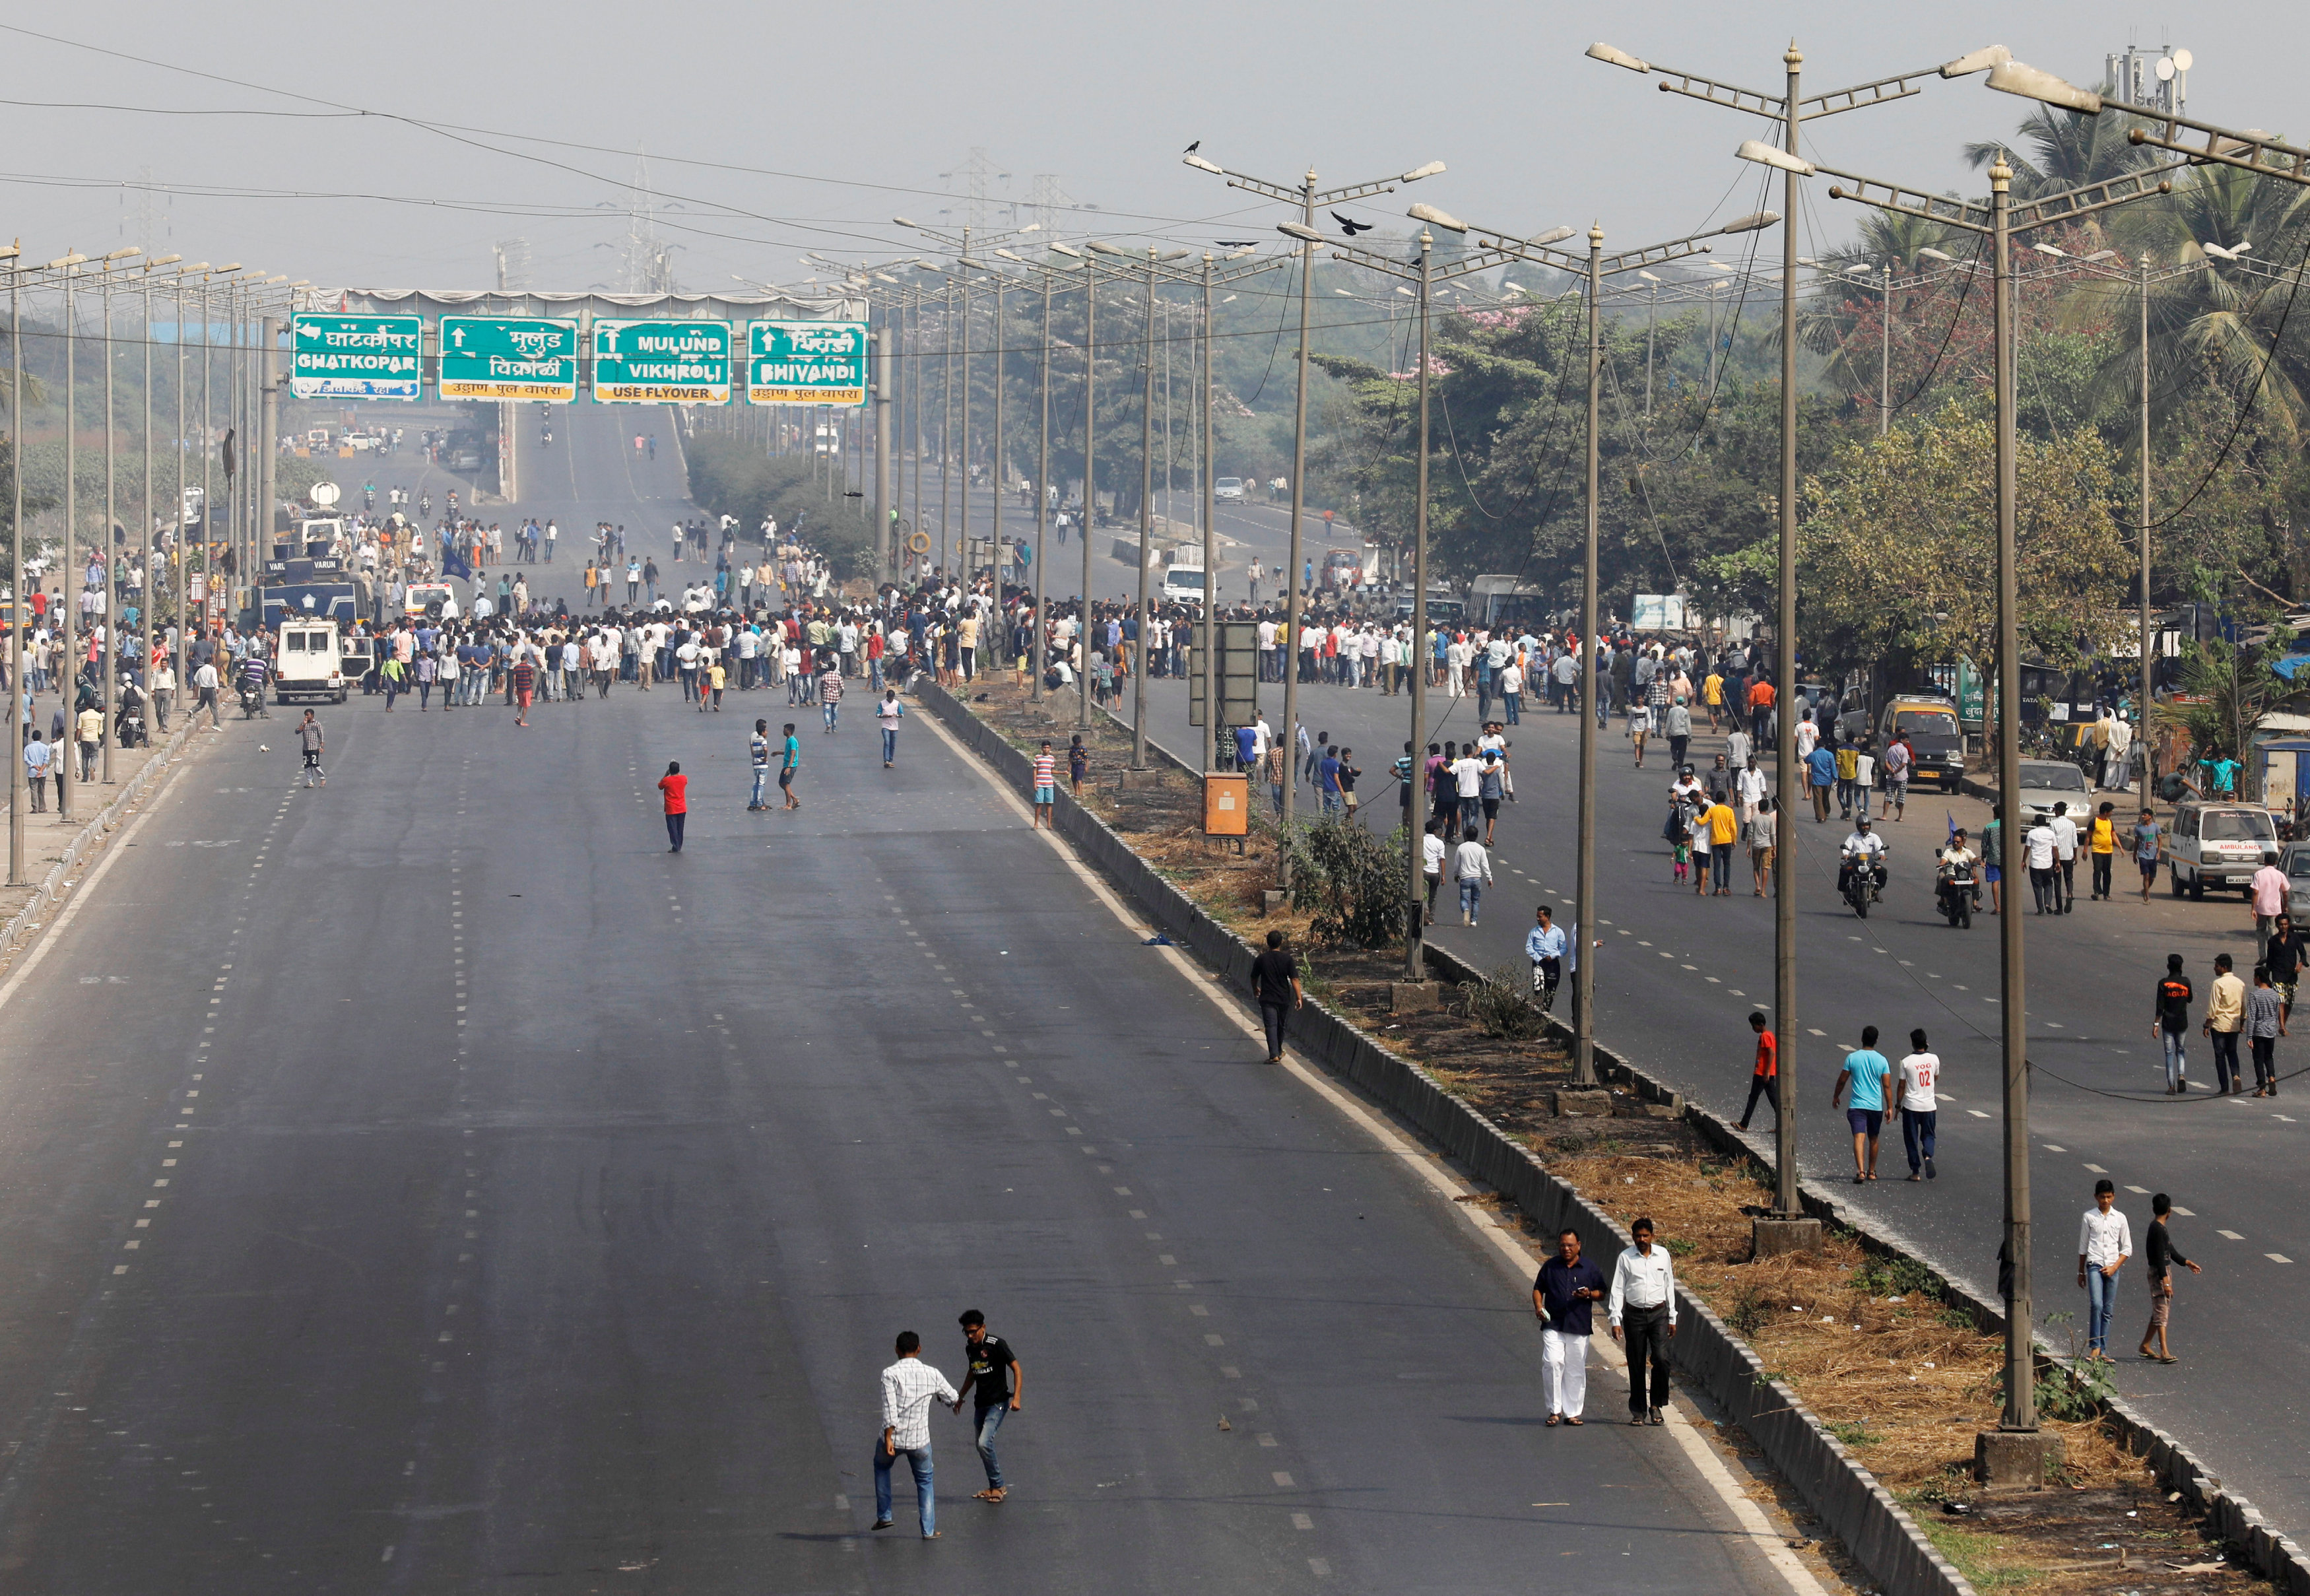 In Pictures: Normal life disrupted in Mumbai